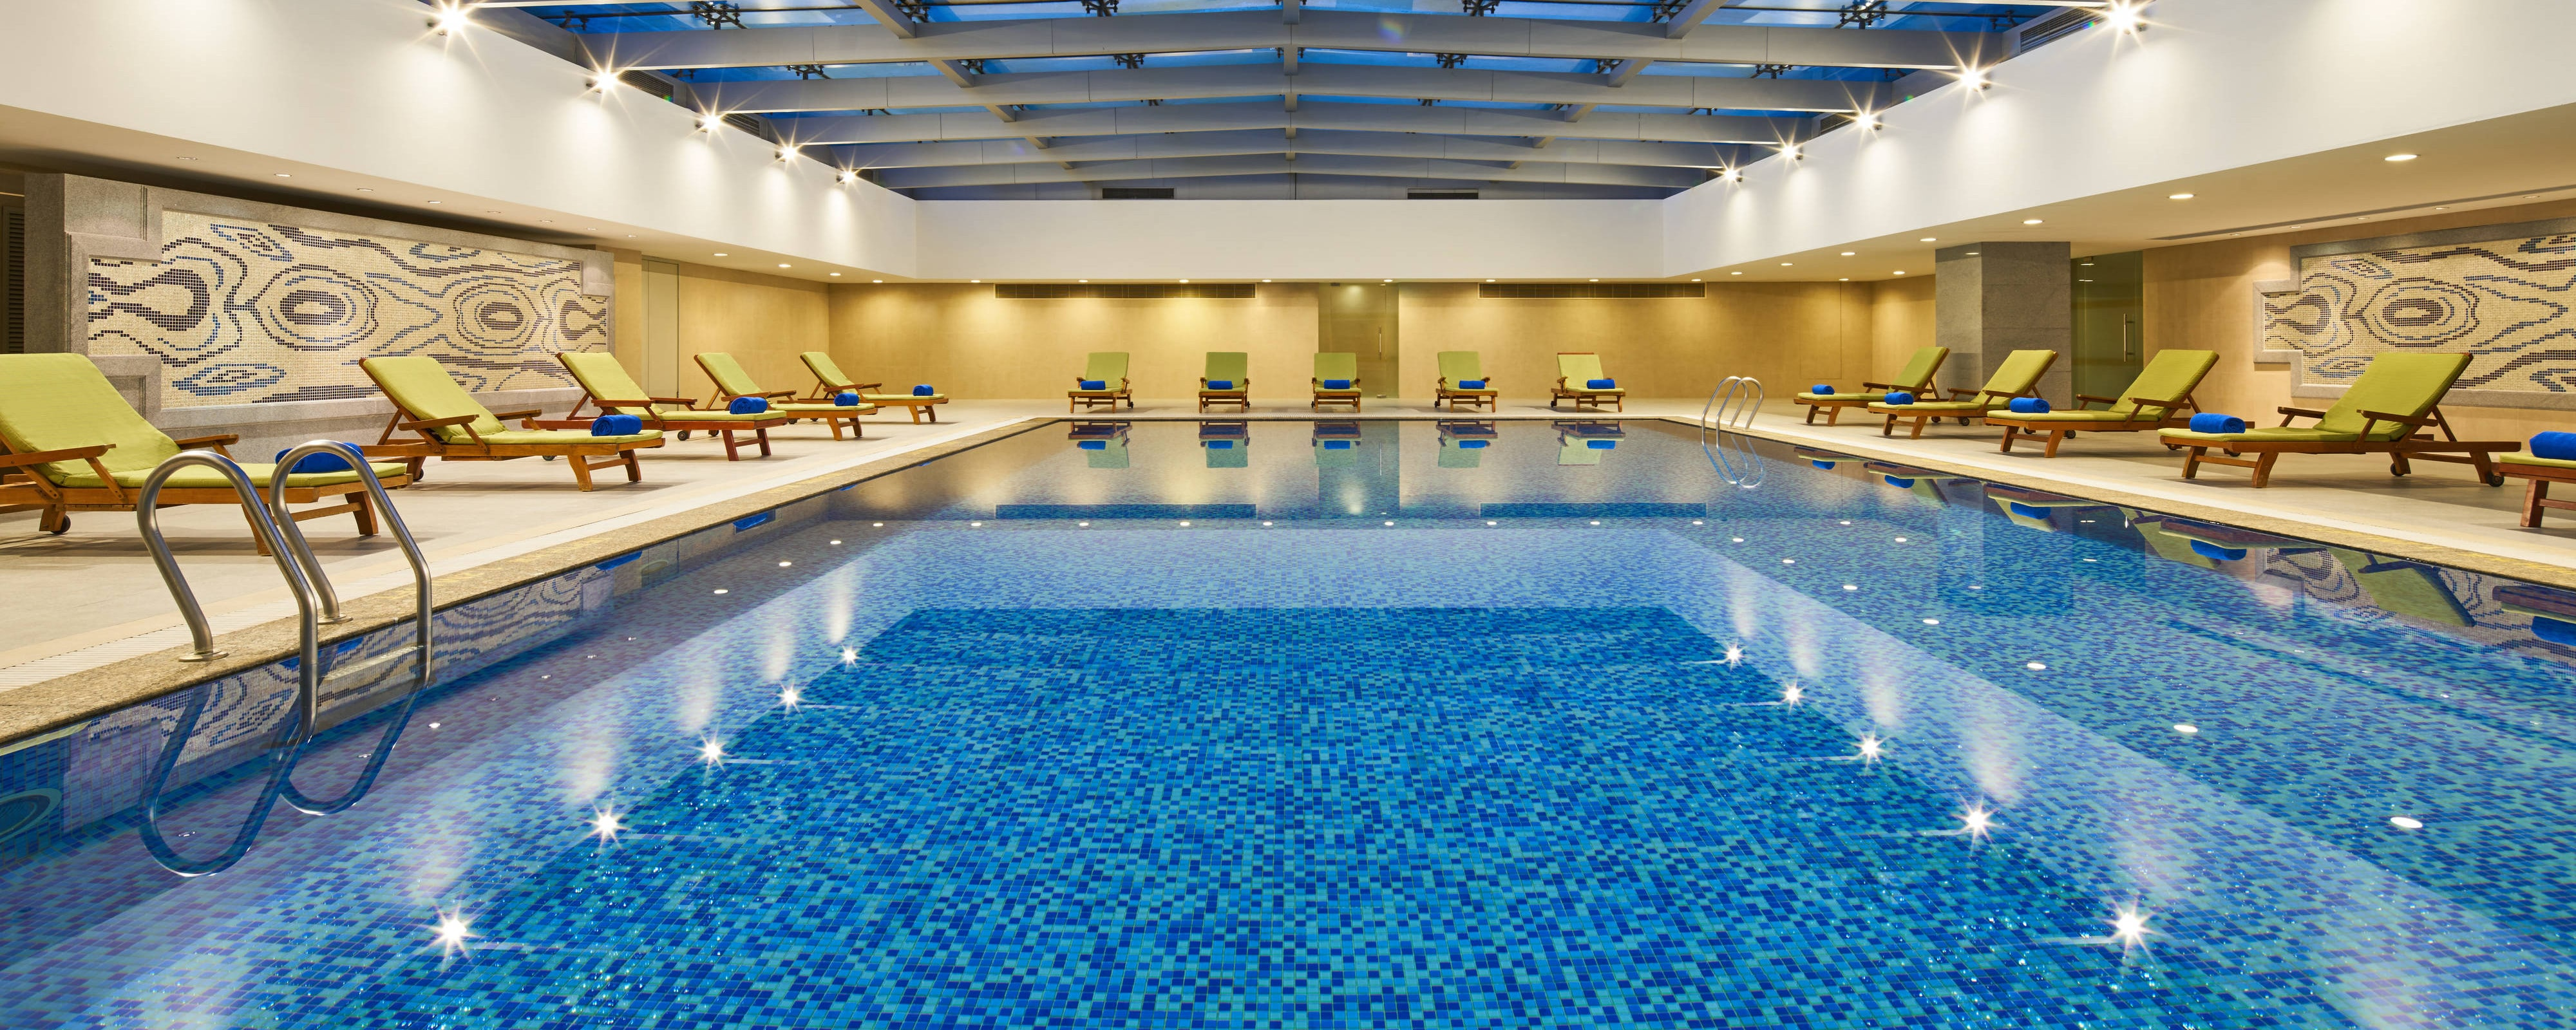 Hotel Gym In Shanghai Recreation Activities At The Four Points By Sheraton Shanghai Daning